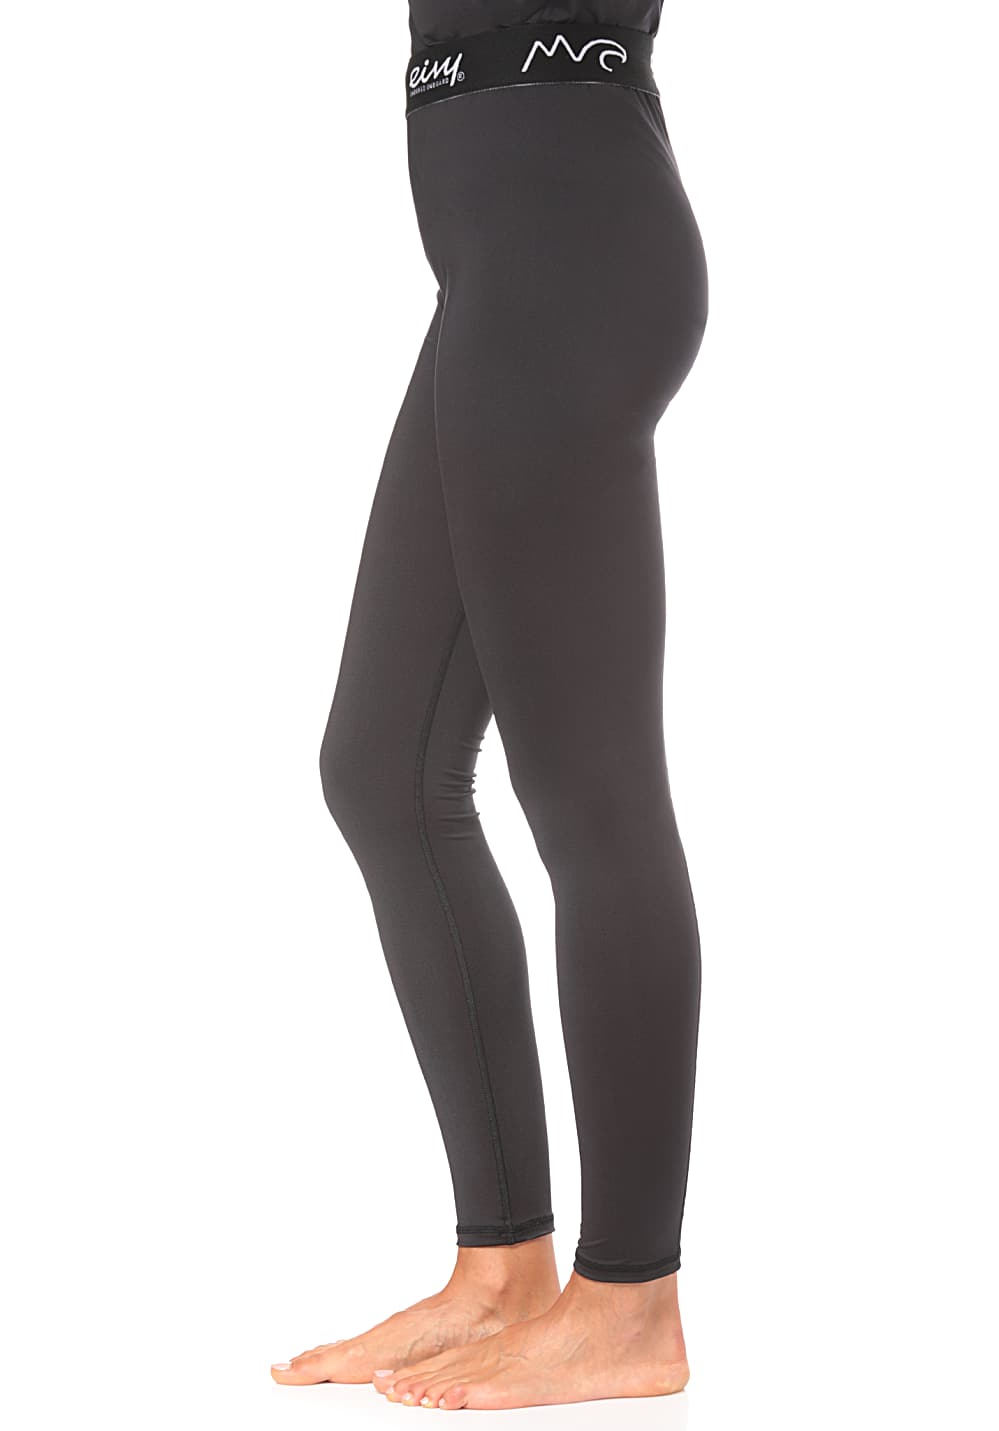 9714f4efd Next. -15%. This product is currently out of stock. EIVY. Icecold Winter  Tights - Functional Bottoms for Women